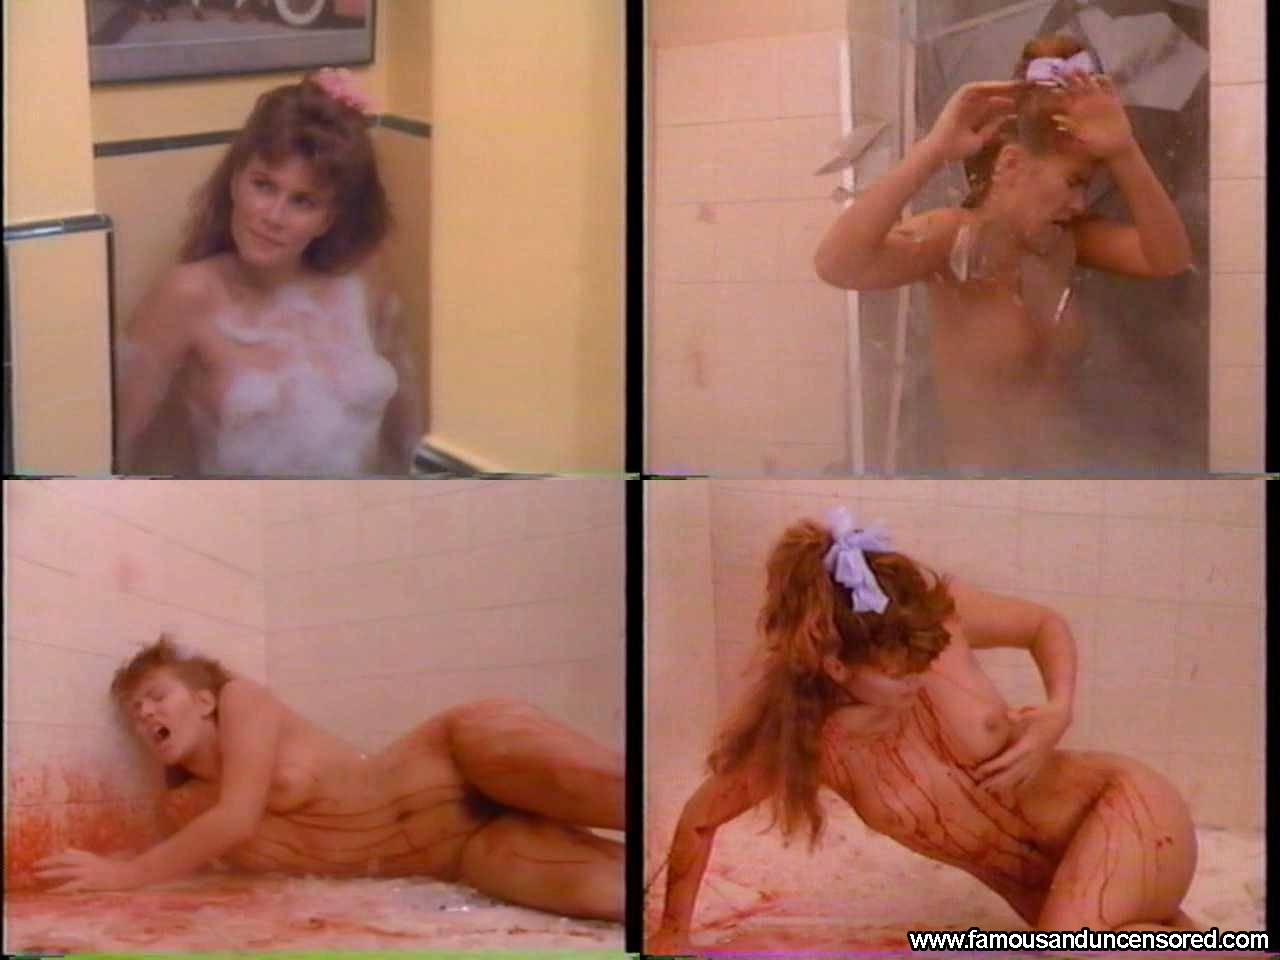 Consider, that Tawny kitaen young nude are also